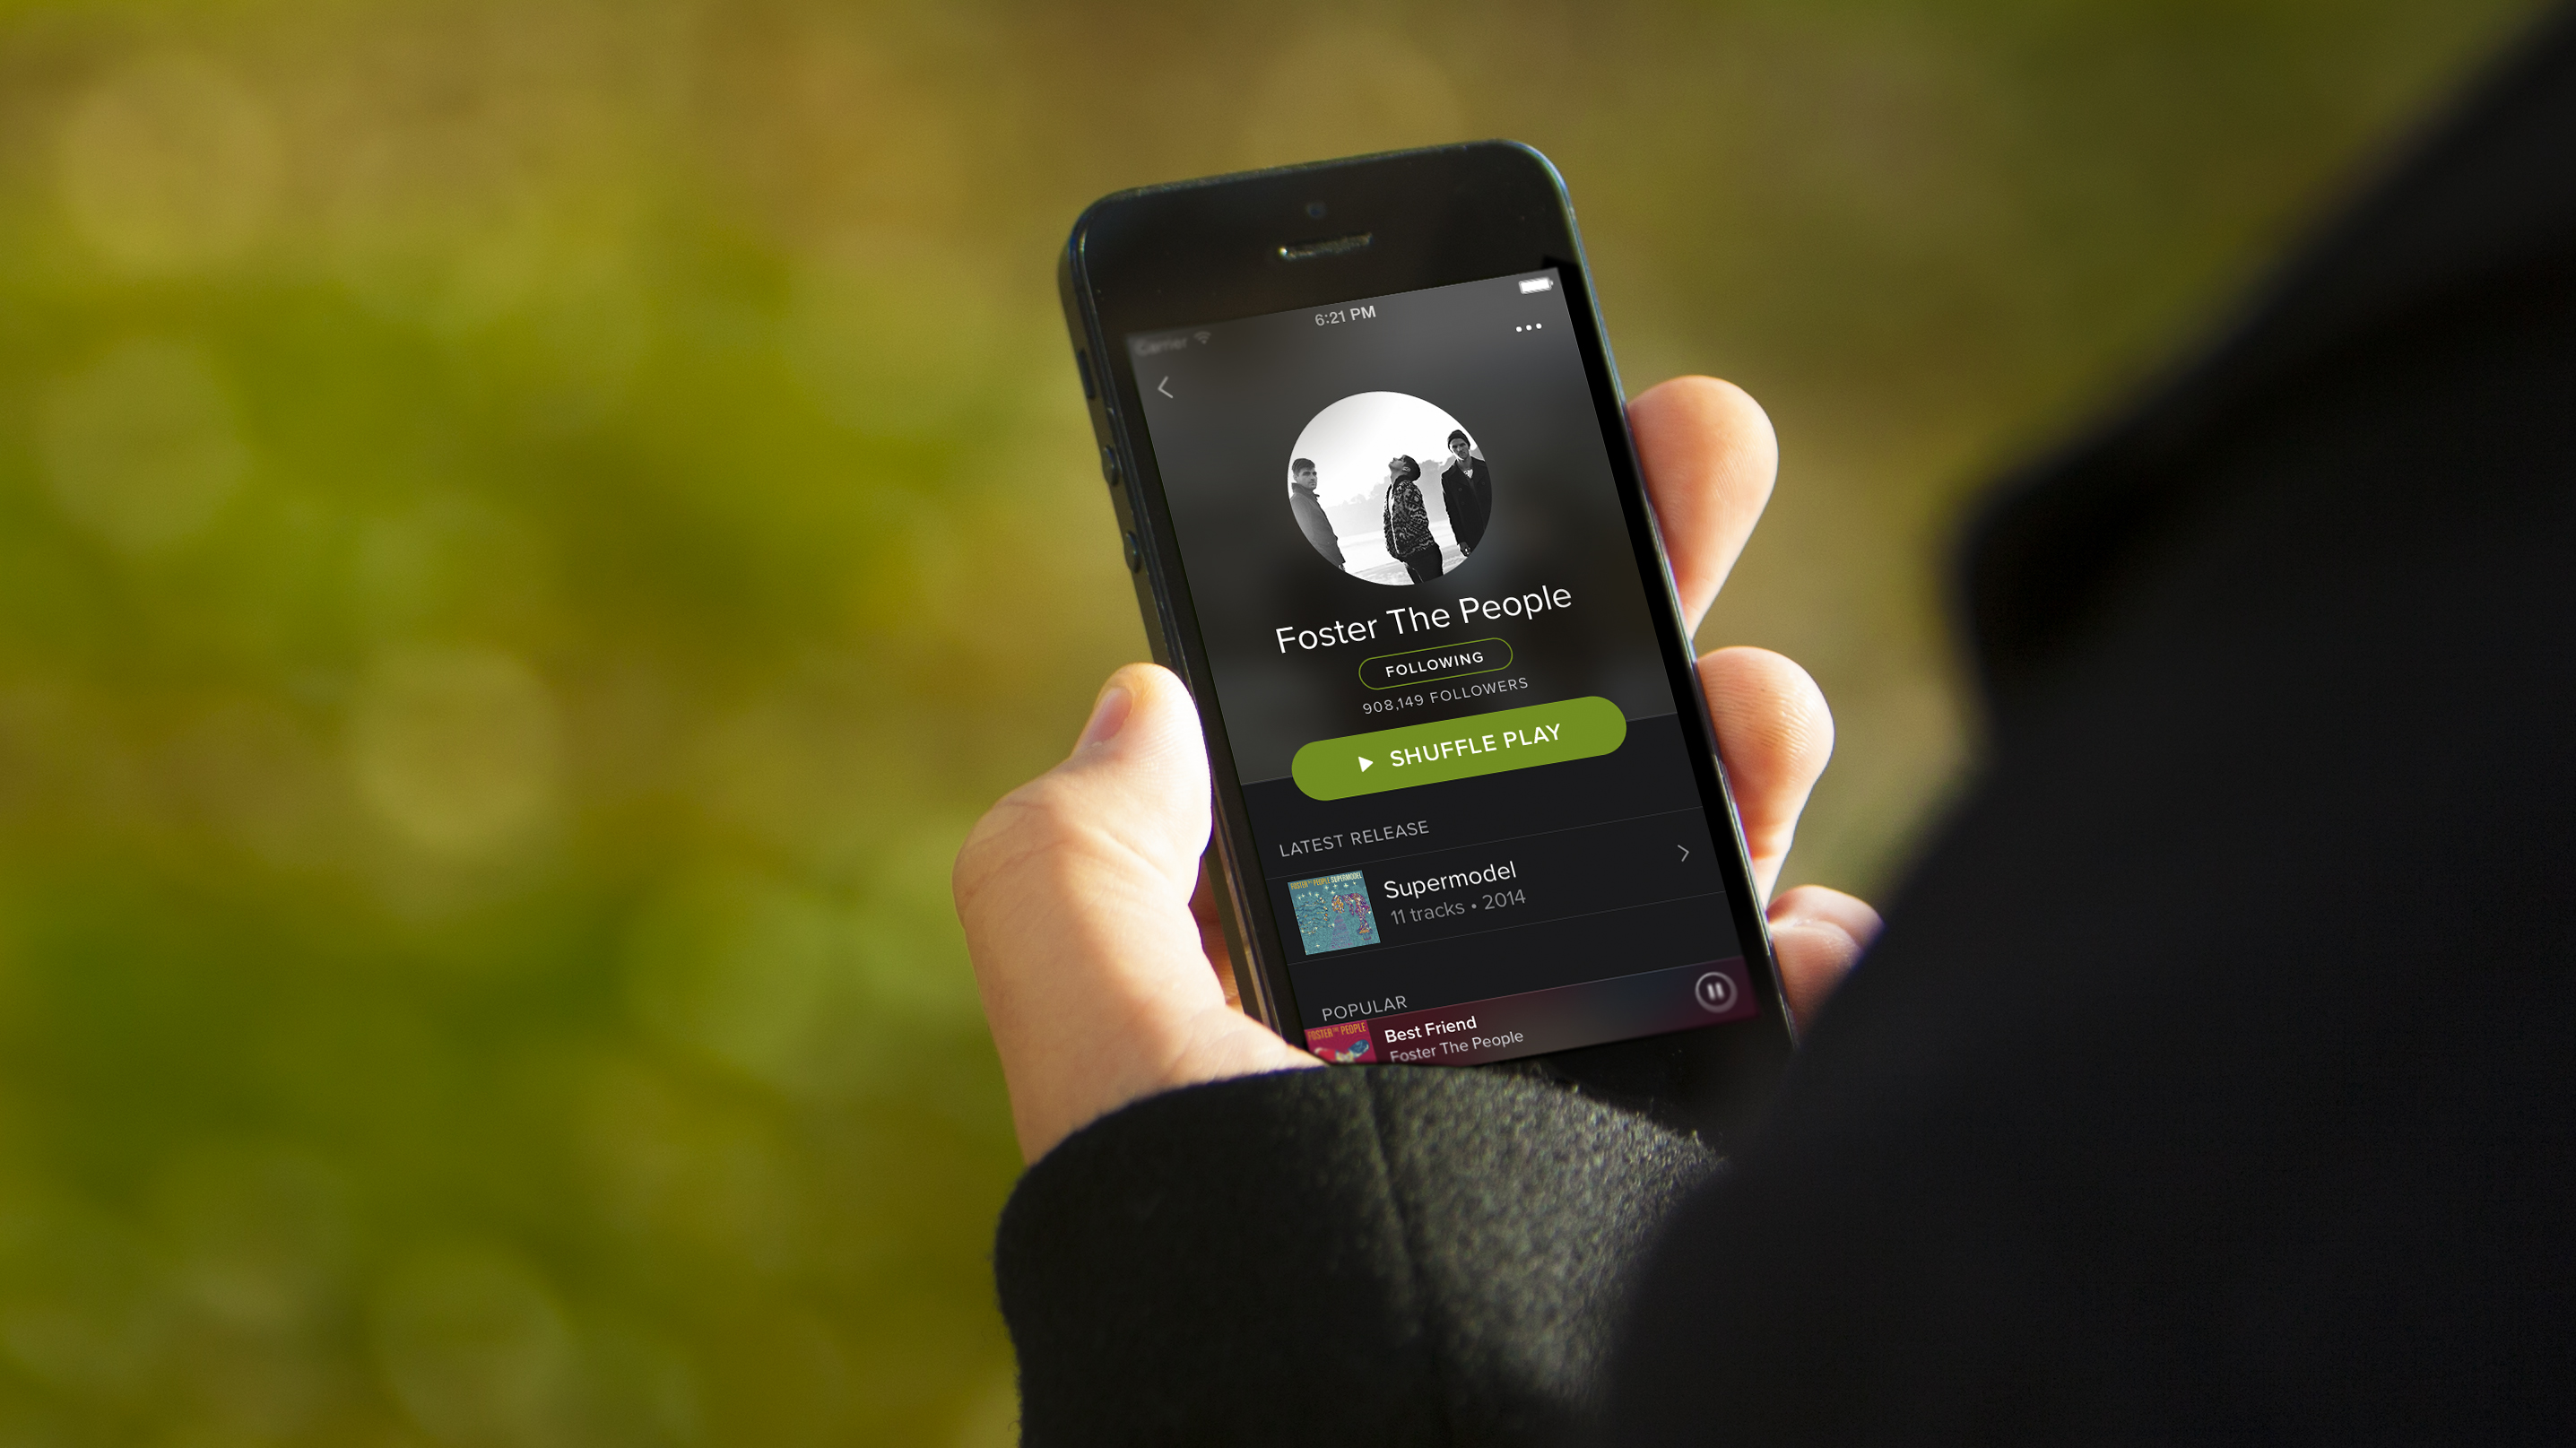 spotify-newlook-iphone-artist-outdoor